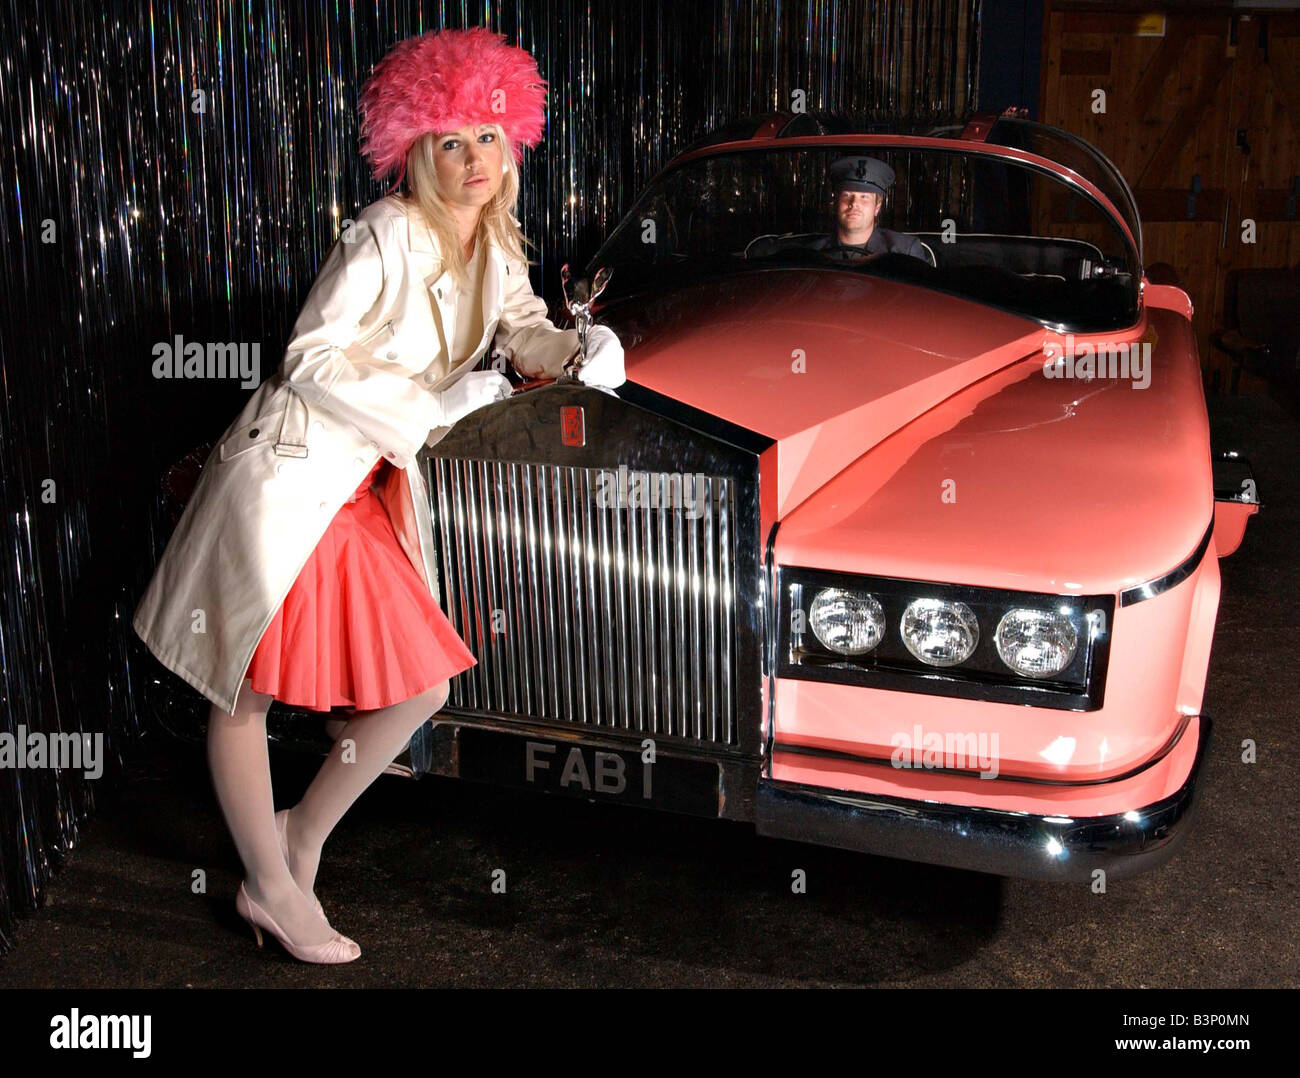 Chauffeur Hat Stock Photos Amp Chauffeur Hat Stock Images